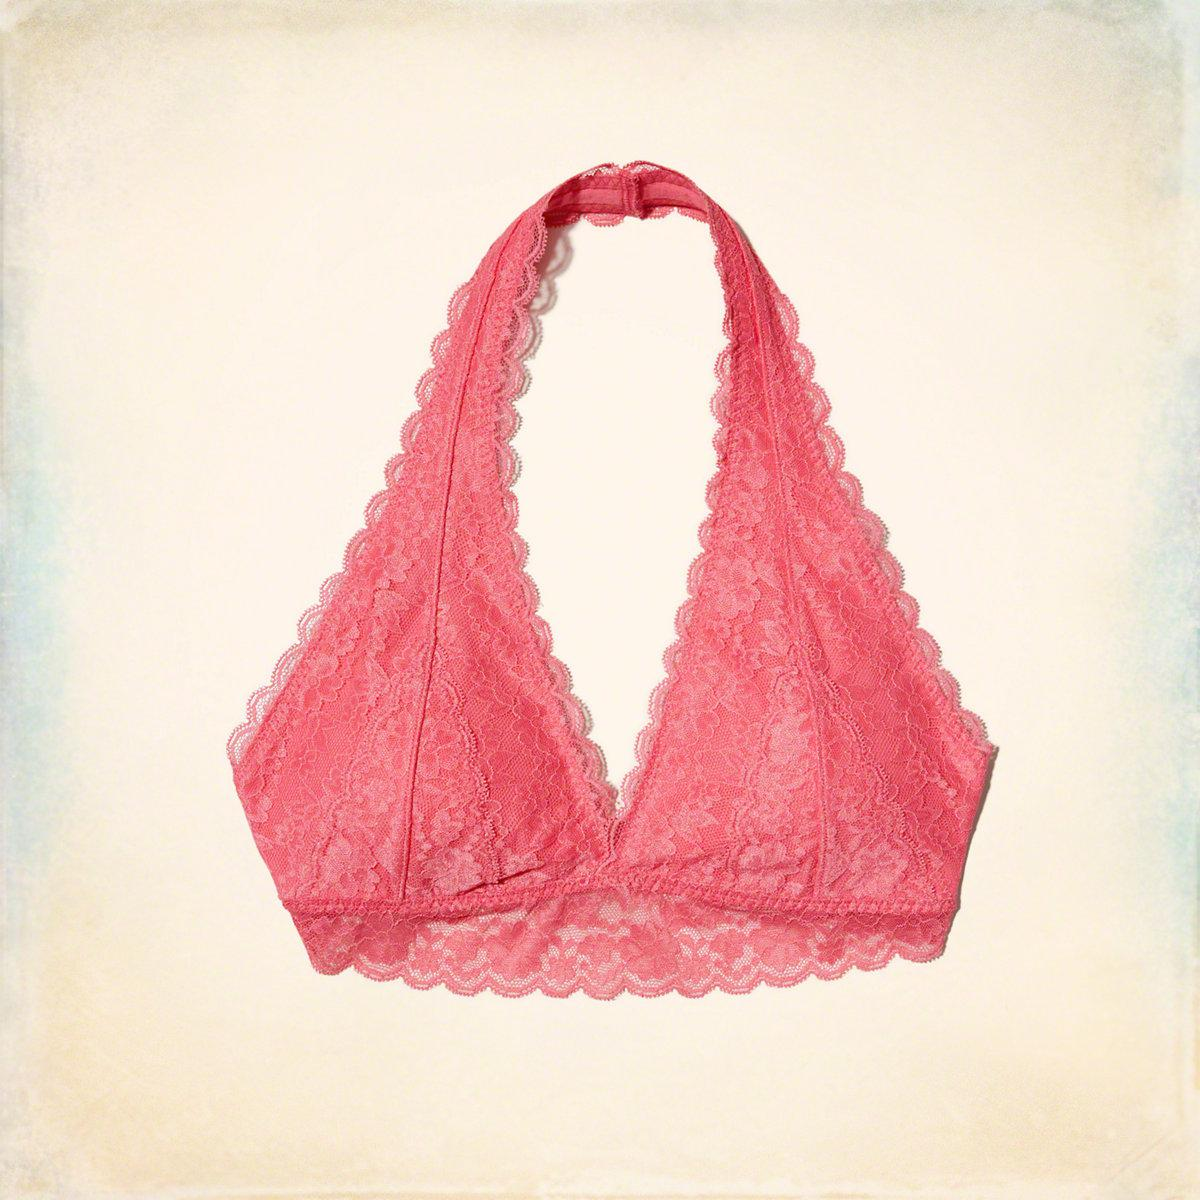 a37ef63ea28 Lyst - Hollister Lace Halter Bralette With Removable Pads in Pink